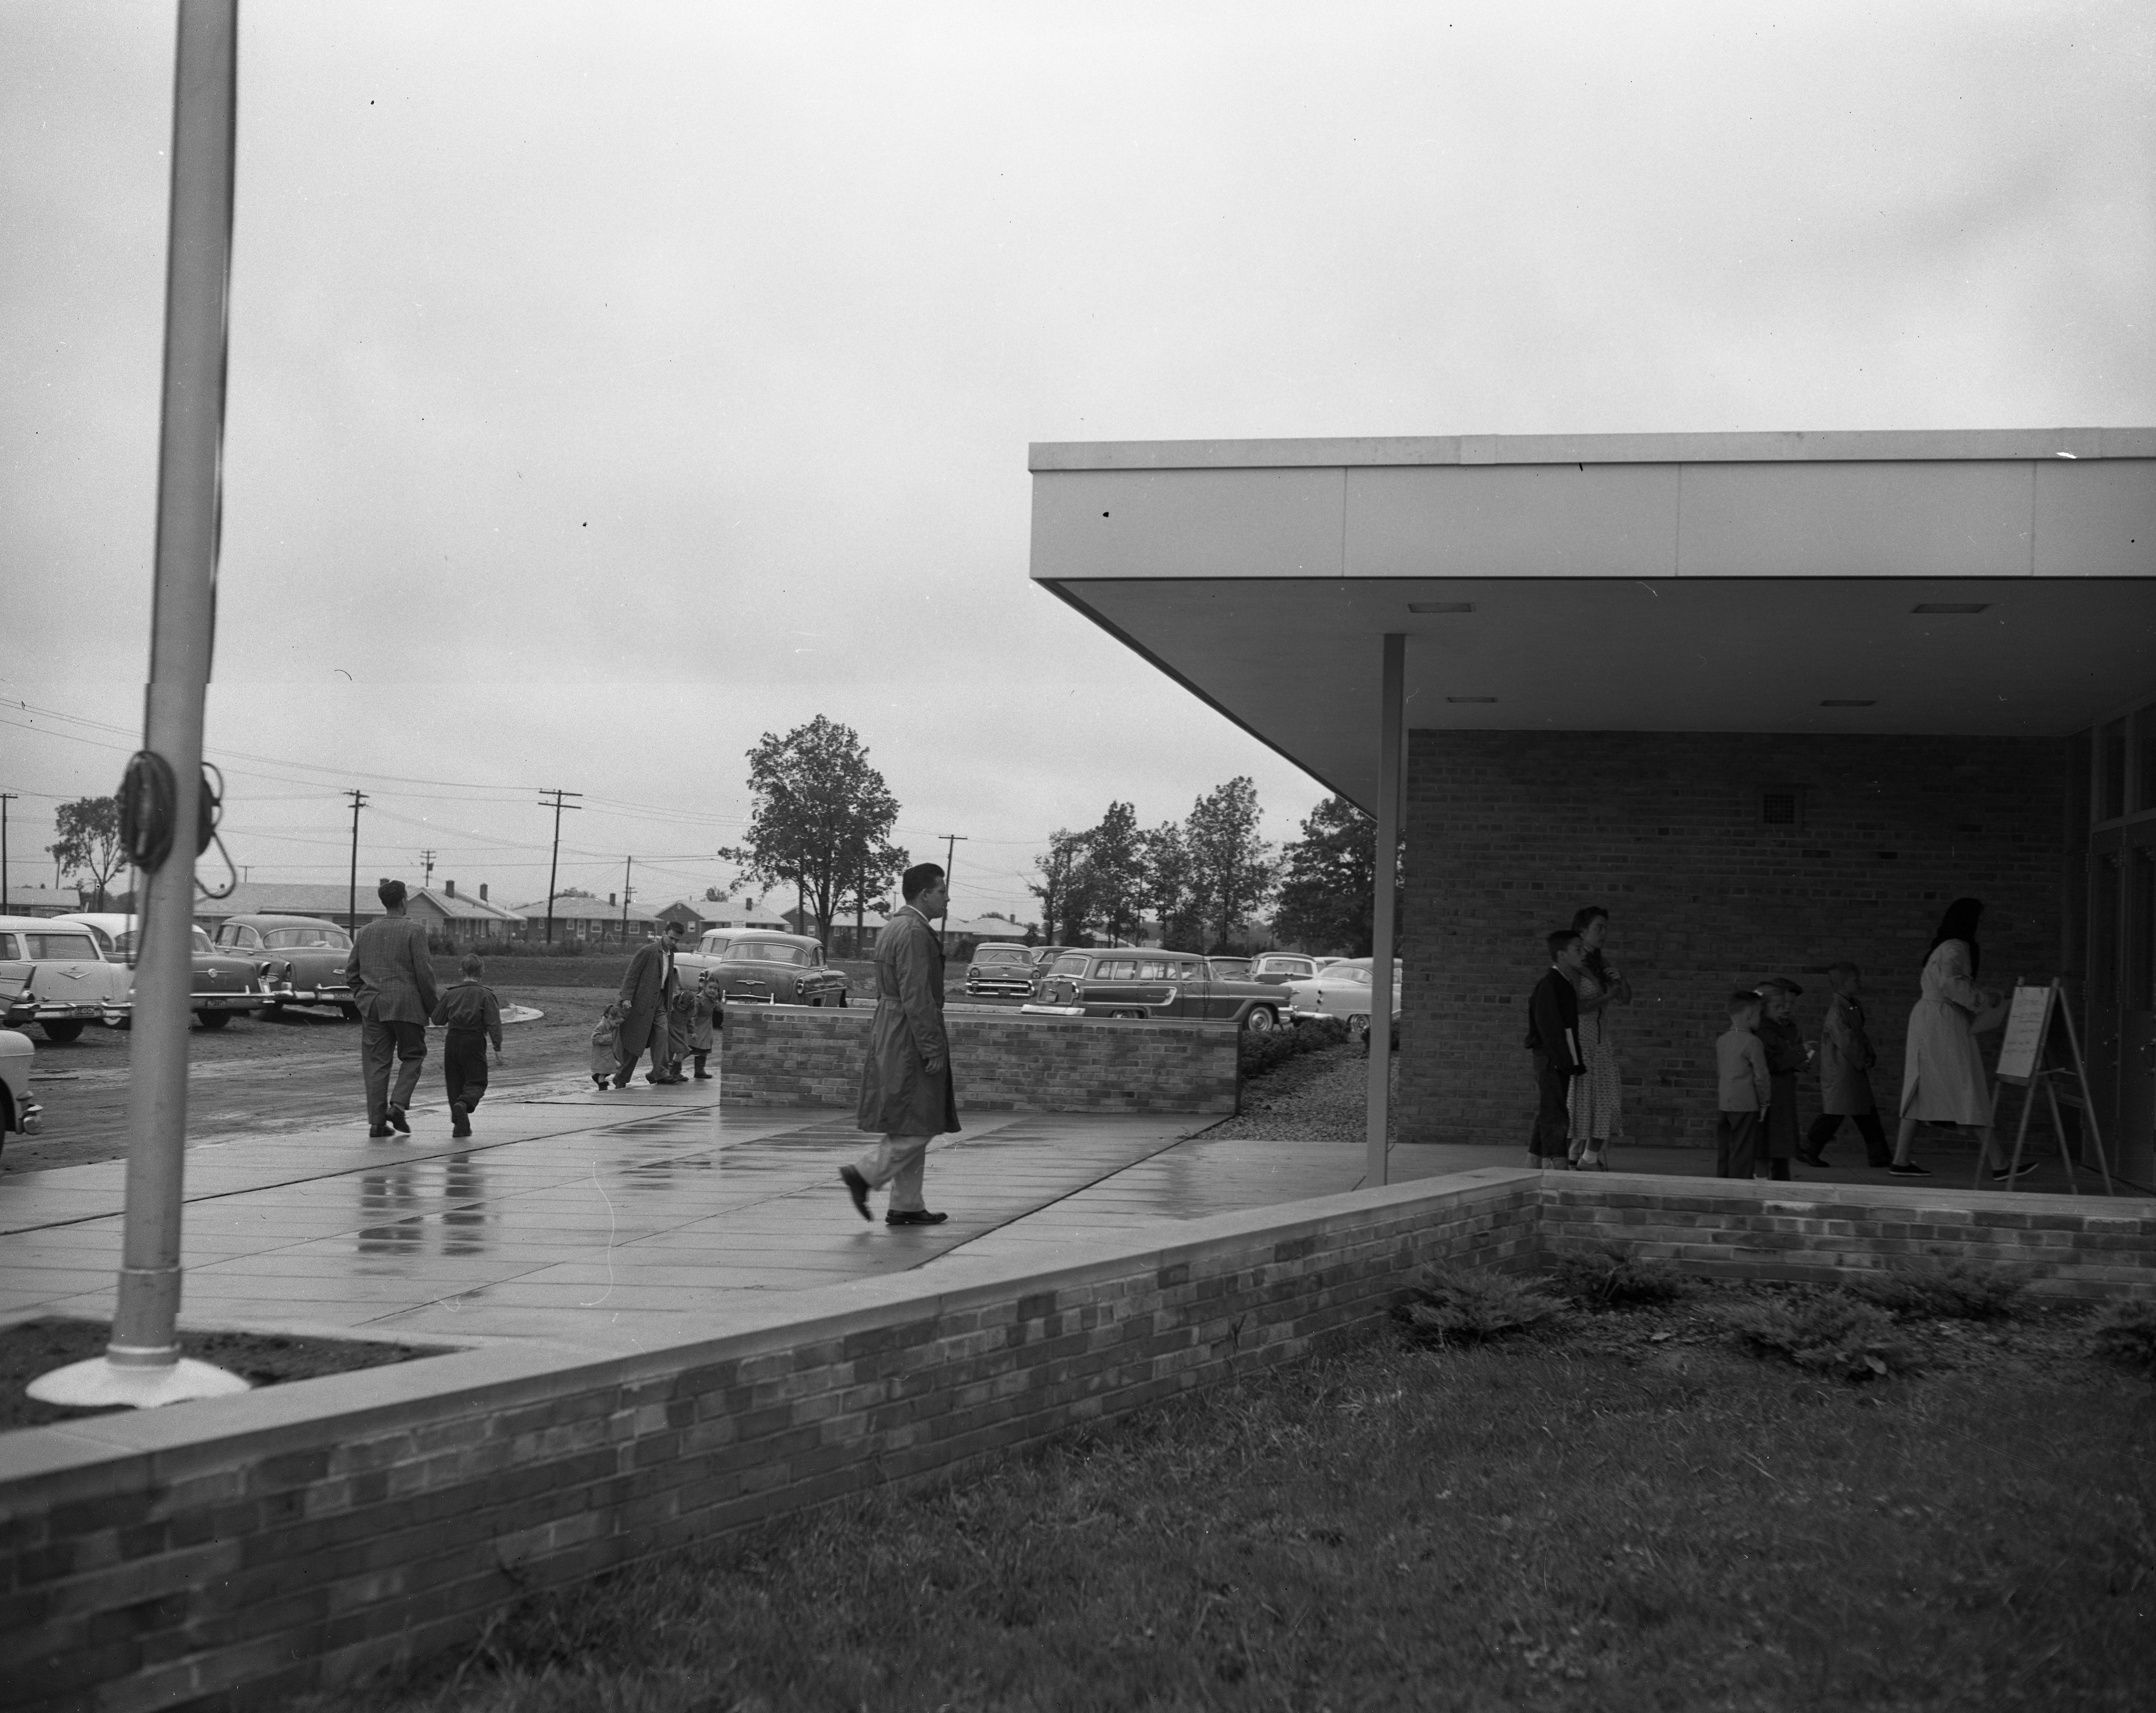 Rainy First Day at New Wines Elementary School, September 1957 image